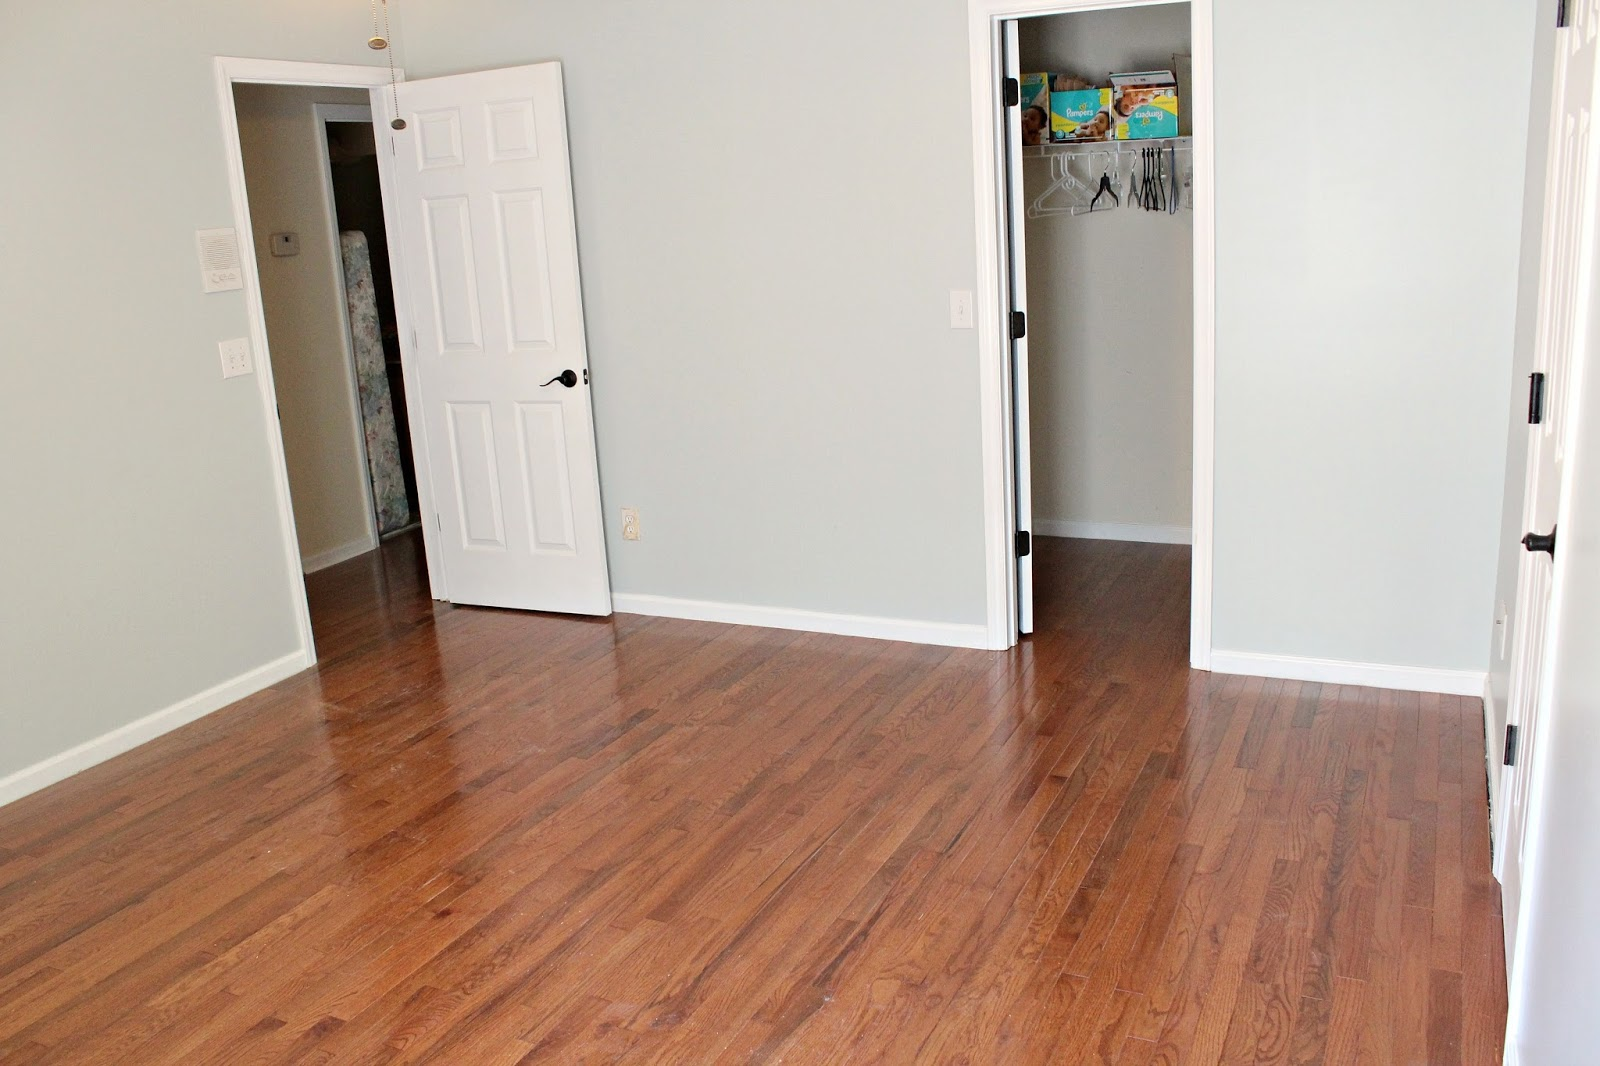 Merveilleux Hardwood Floors Upstairs: Part 5 (Guest Room Reveal)